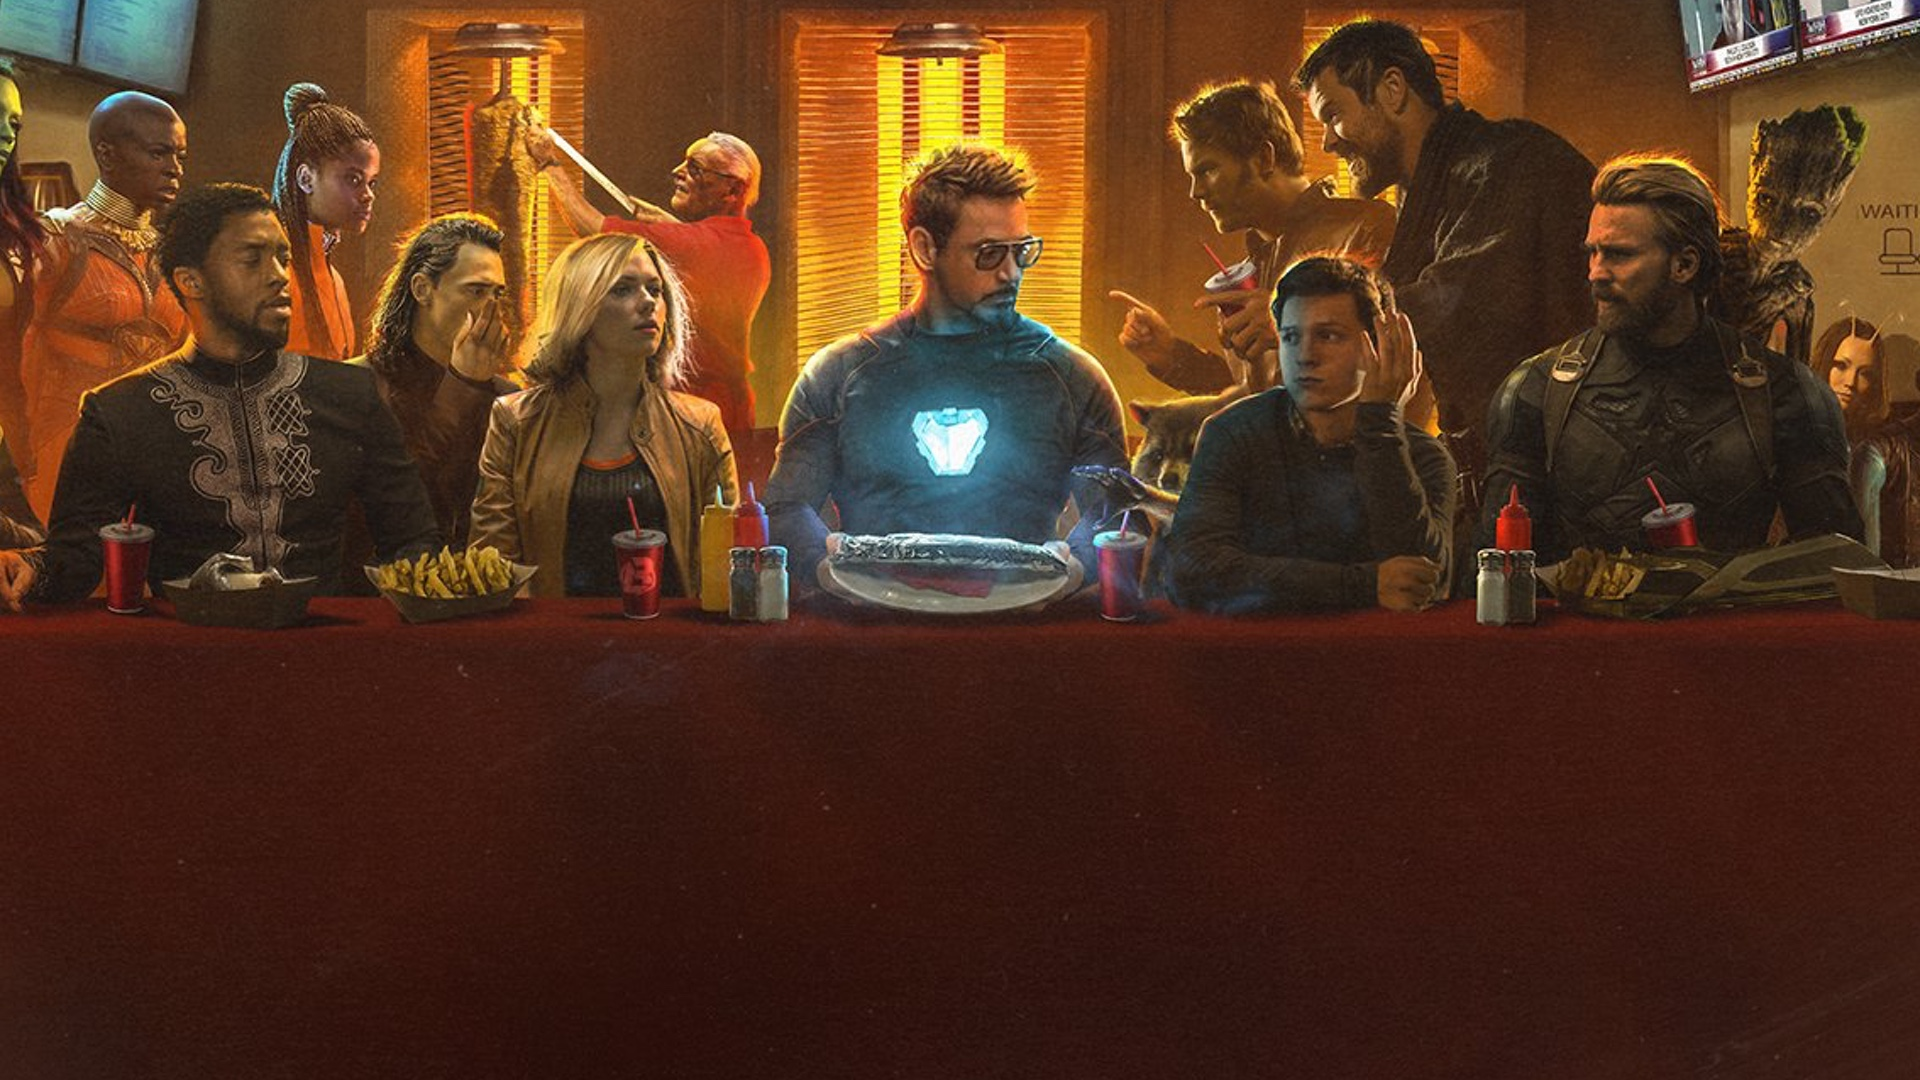 Tony Stark Hd Wallpapers Design And Specs Revealed For The Gypsy Avenger Jaeger In